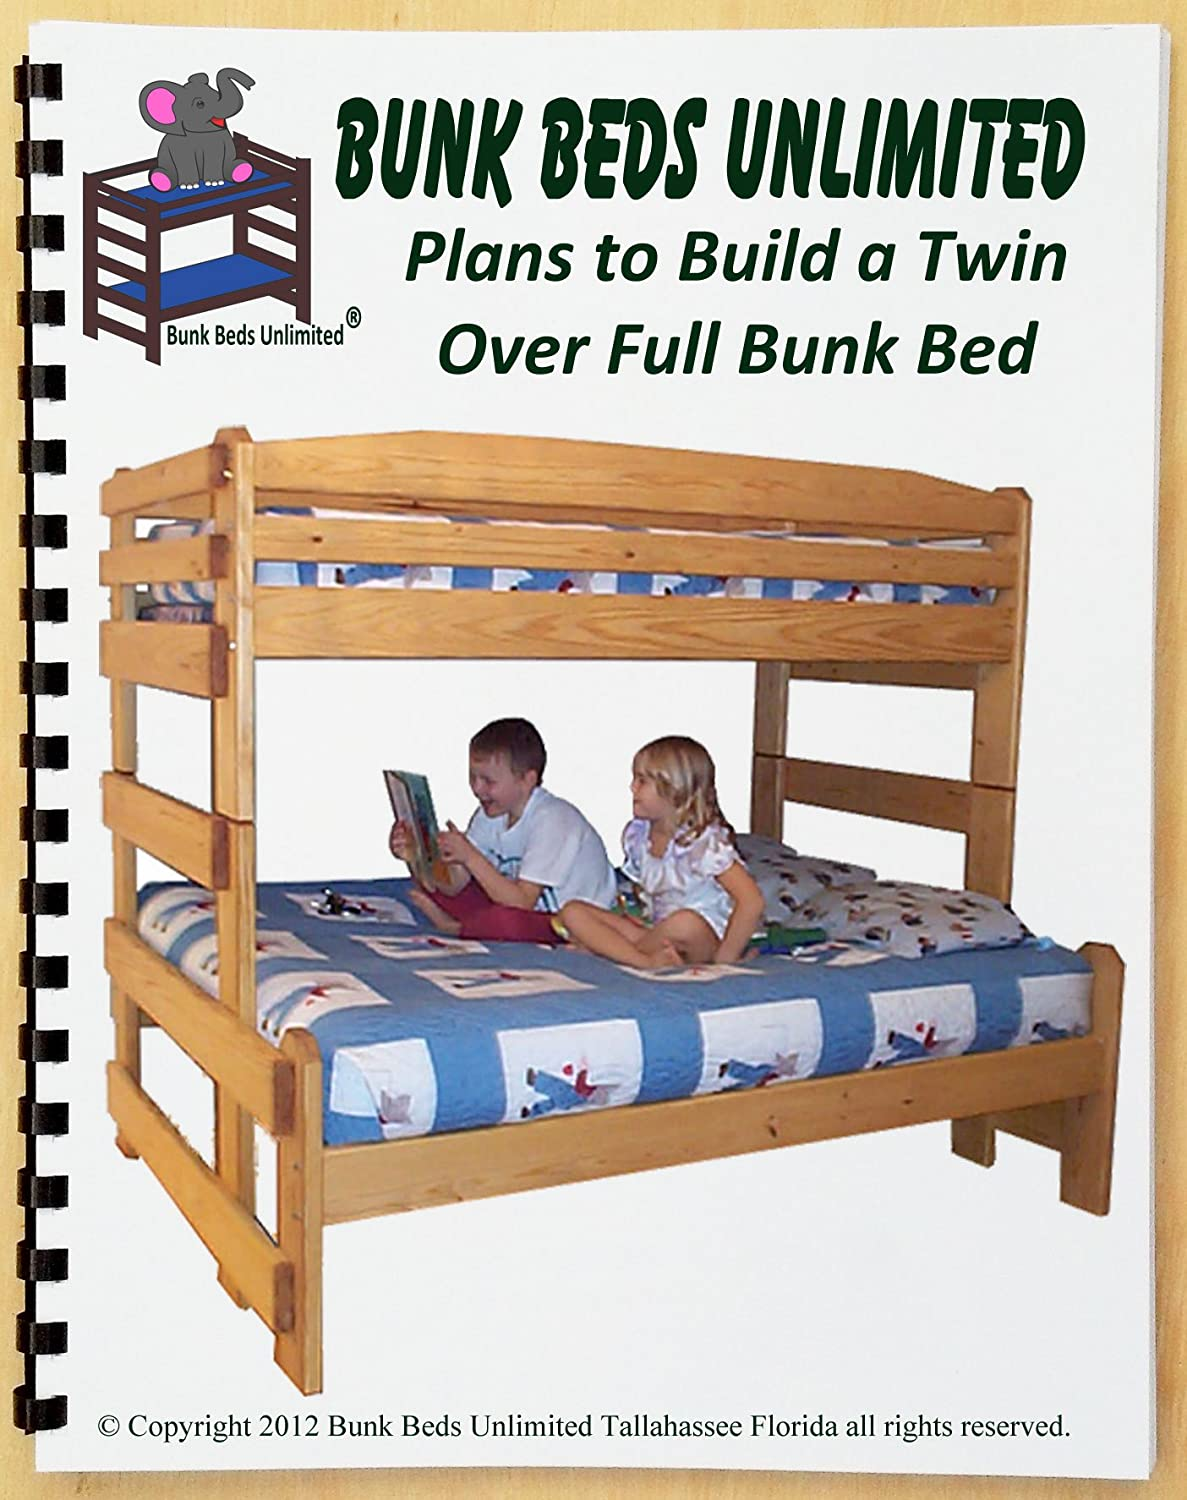 Wood Not Included Bunk Bed Diy Woodworking Plan To Build Your Own Full Over Full Size With Two Large Storage Drawers And Hardware Kit For Bunk And Two Drawers Project Plans Power